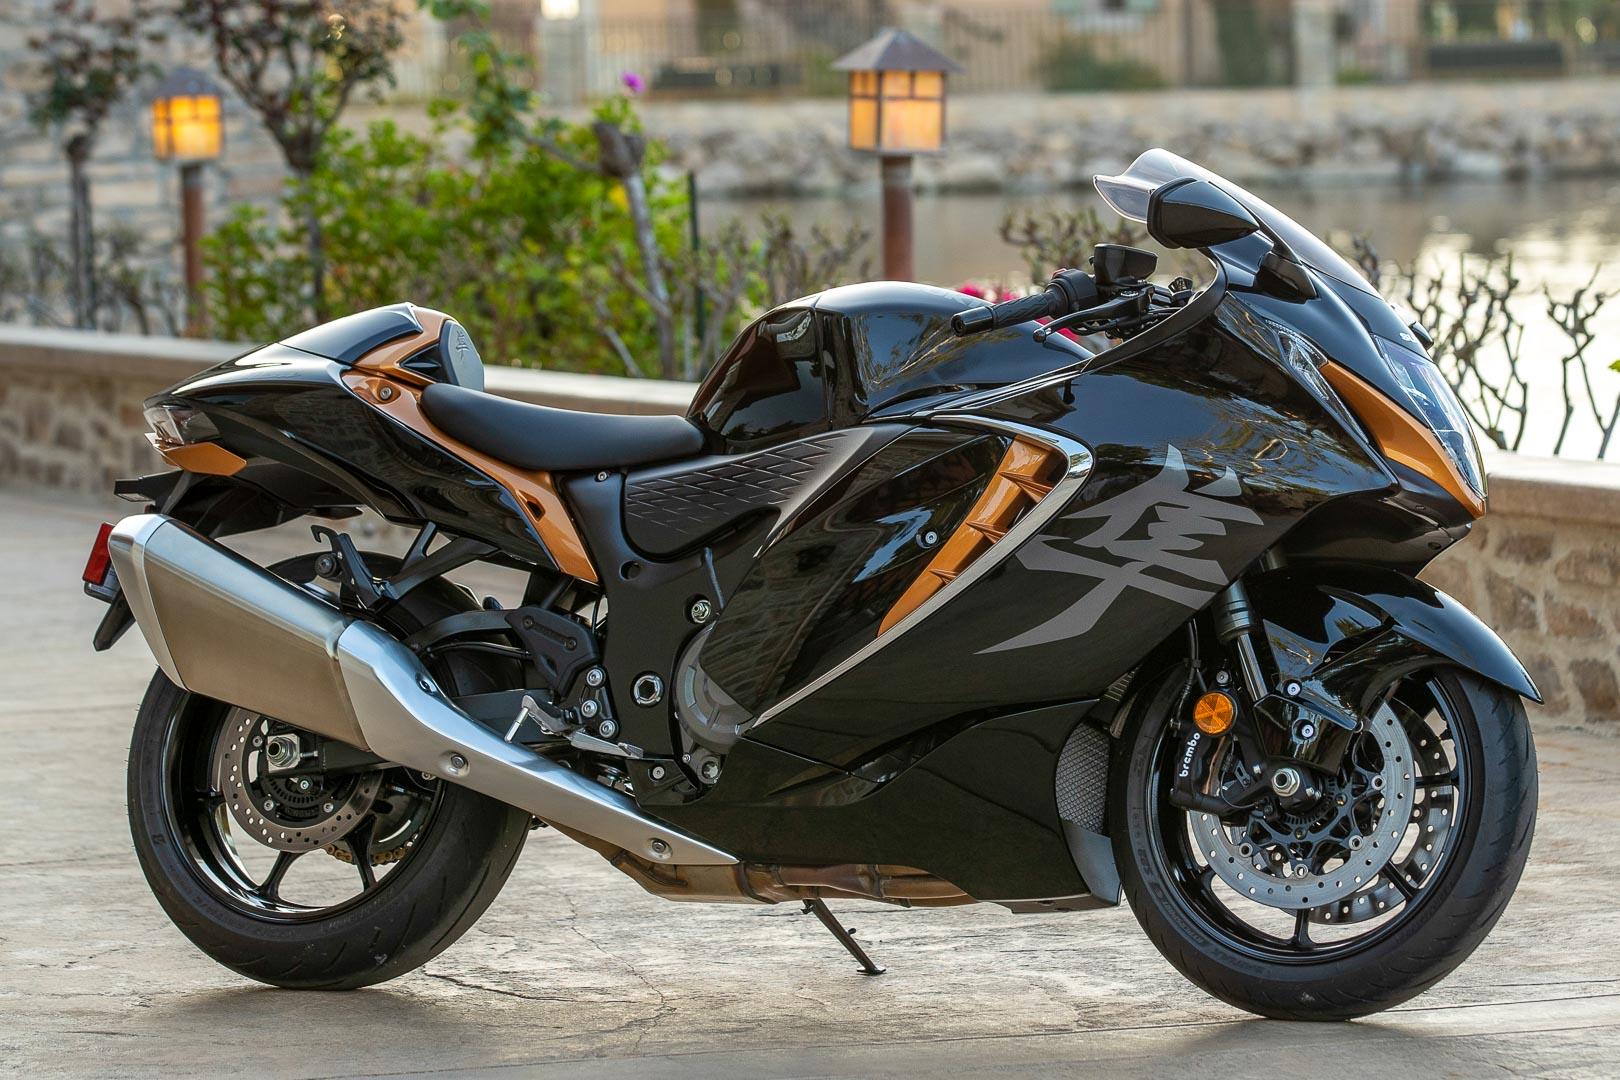 2022 Suzuki Hayabusa Test: Quicker and More Refined